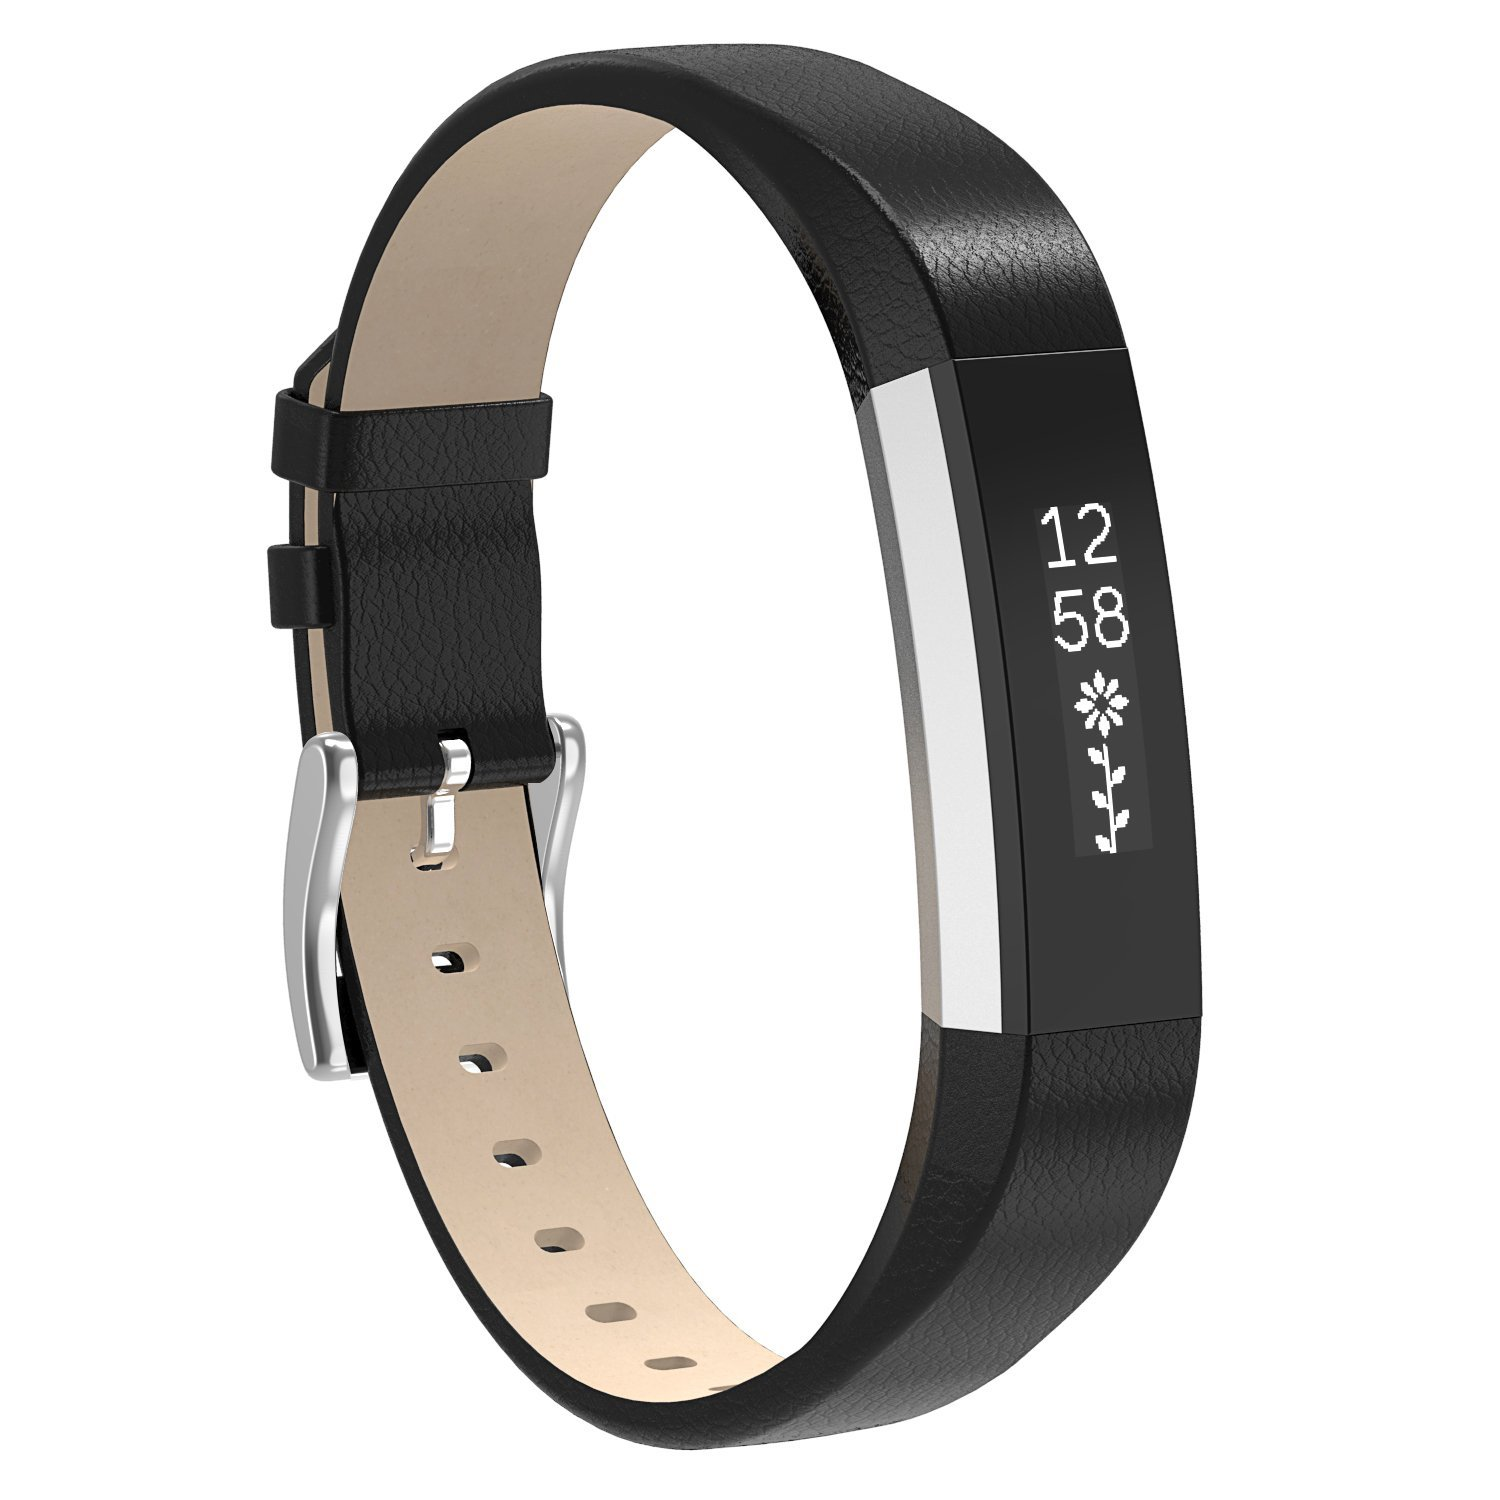 Newest Fitbit Fitness Watch Gear Elastic Silicone Wristband with Metal Clasp | Fitbit Alta & Alta HR Replacement Bracelet Strap Bands By Element Works - Black